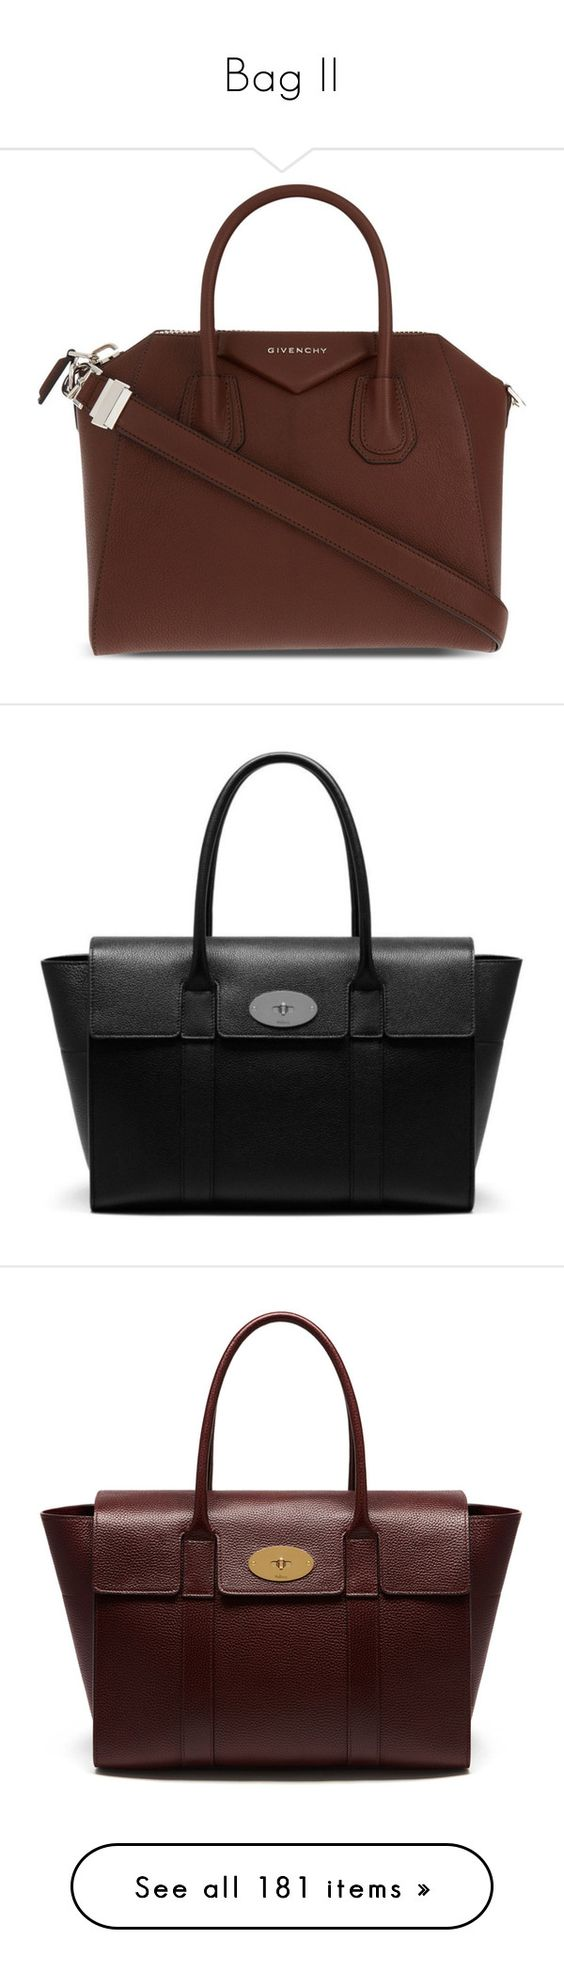 """""""Bag II"""" by yle06 ❤ liked on Polyvore featuring bags, handbags, tote bags, brown, zippered tote bag, brown leather tote bag, genuine leather tote, leather zip tote, leather zipper tote and structured bag"""